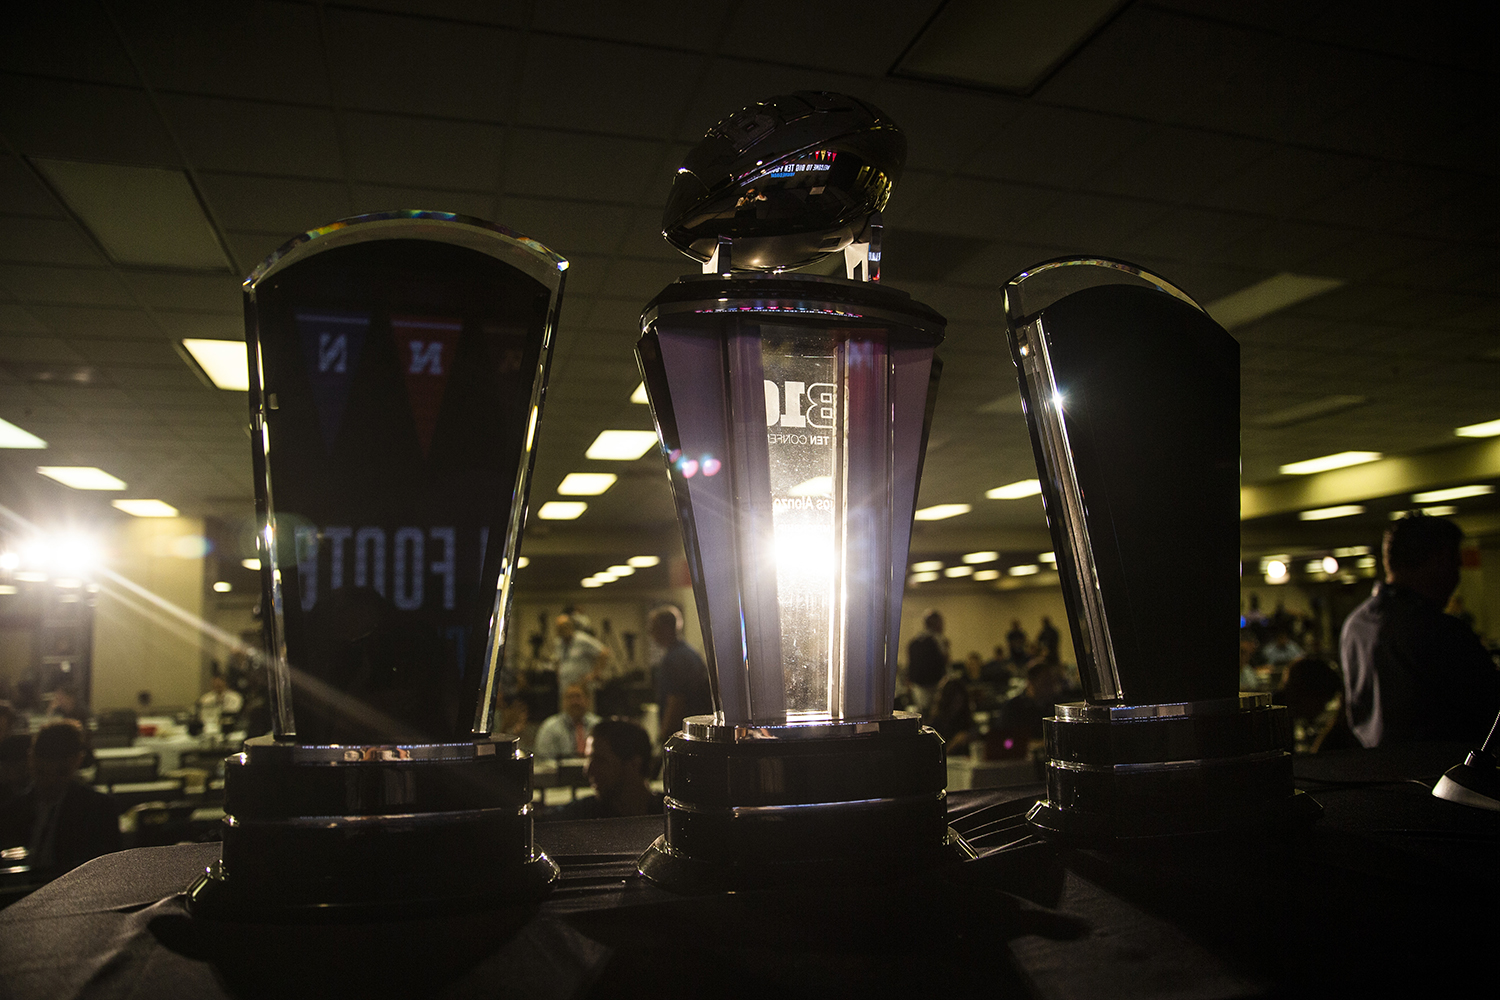 The Big Ten trophies are seen at the Big Ten Football Media Day in Chicago, Ill., on Thursday, July 18, 2019.